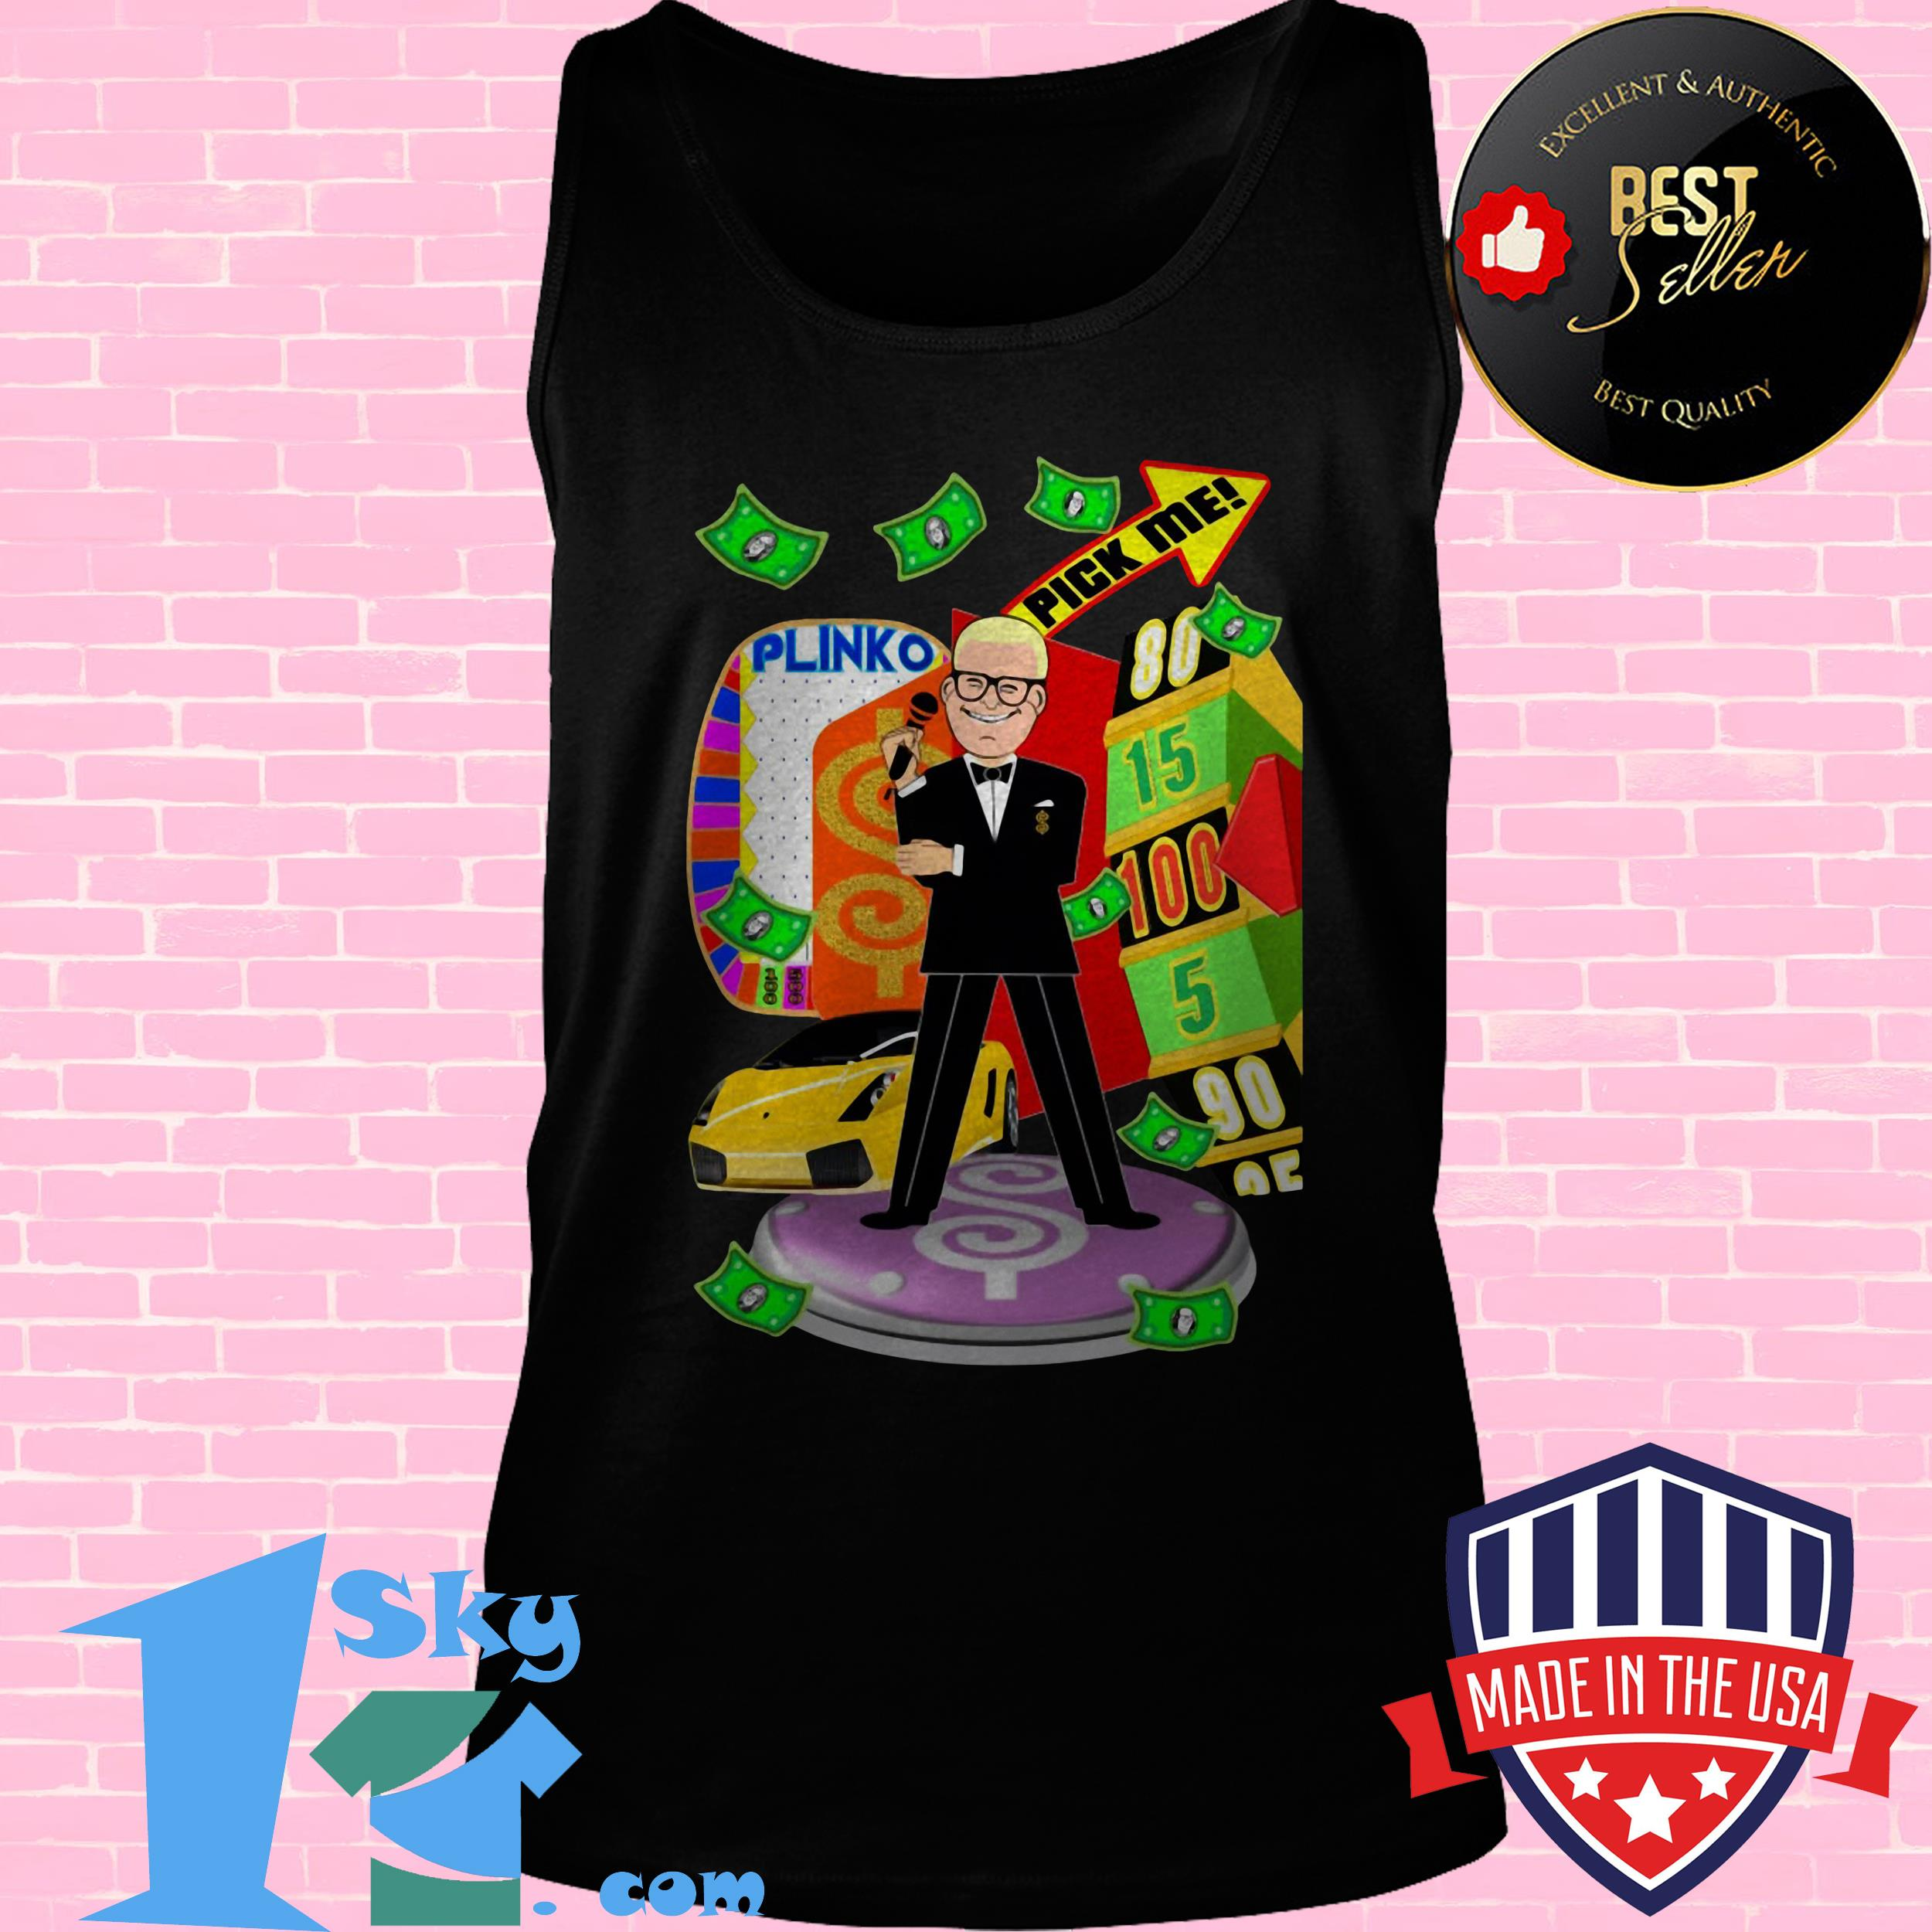 the price is right game show contestant tank top - The Price Is Right Game Show Contestant shirt